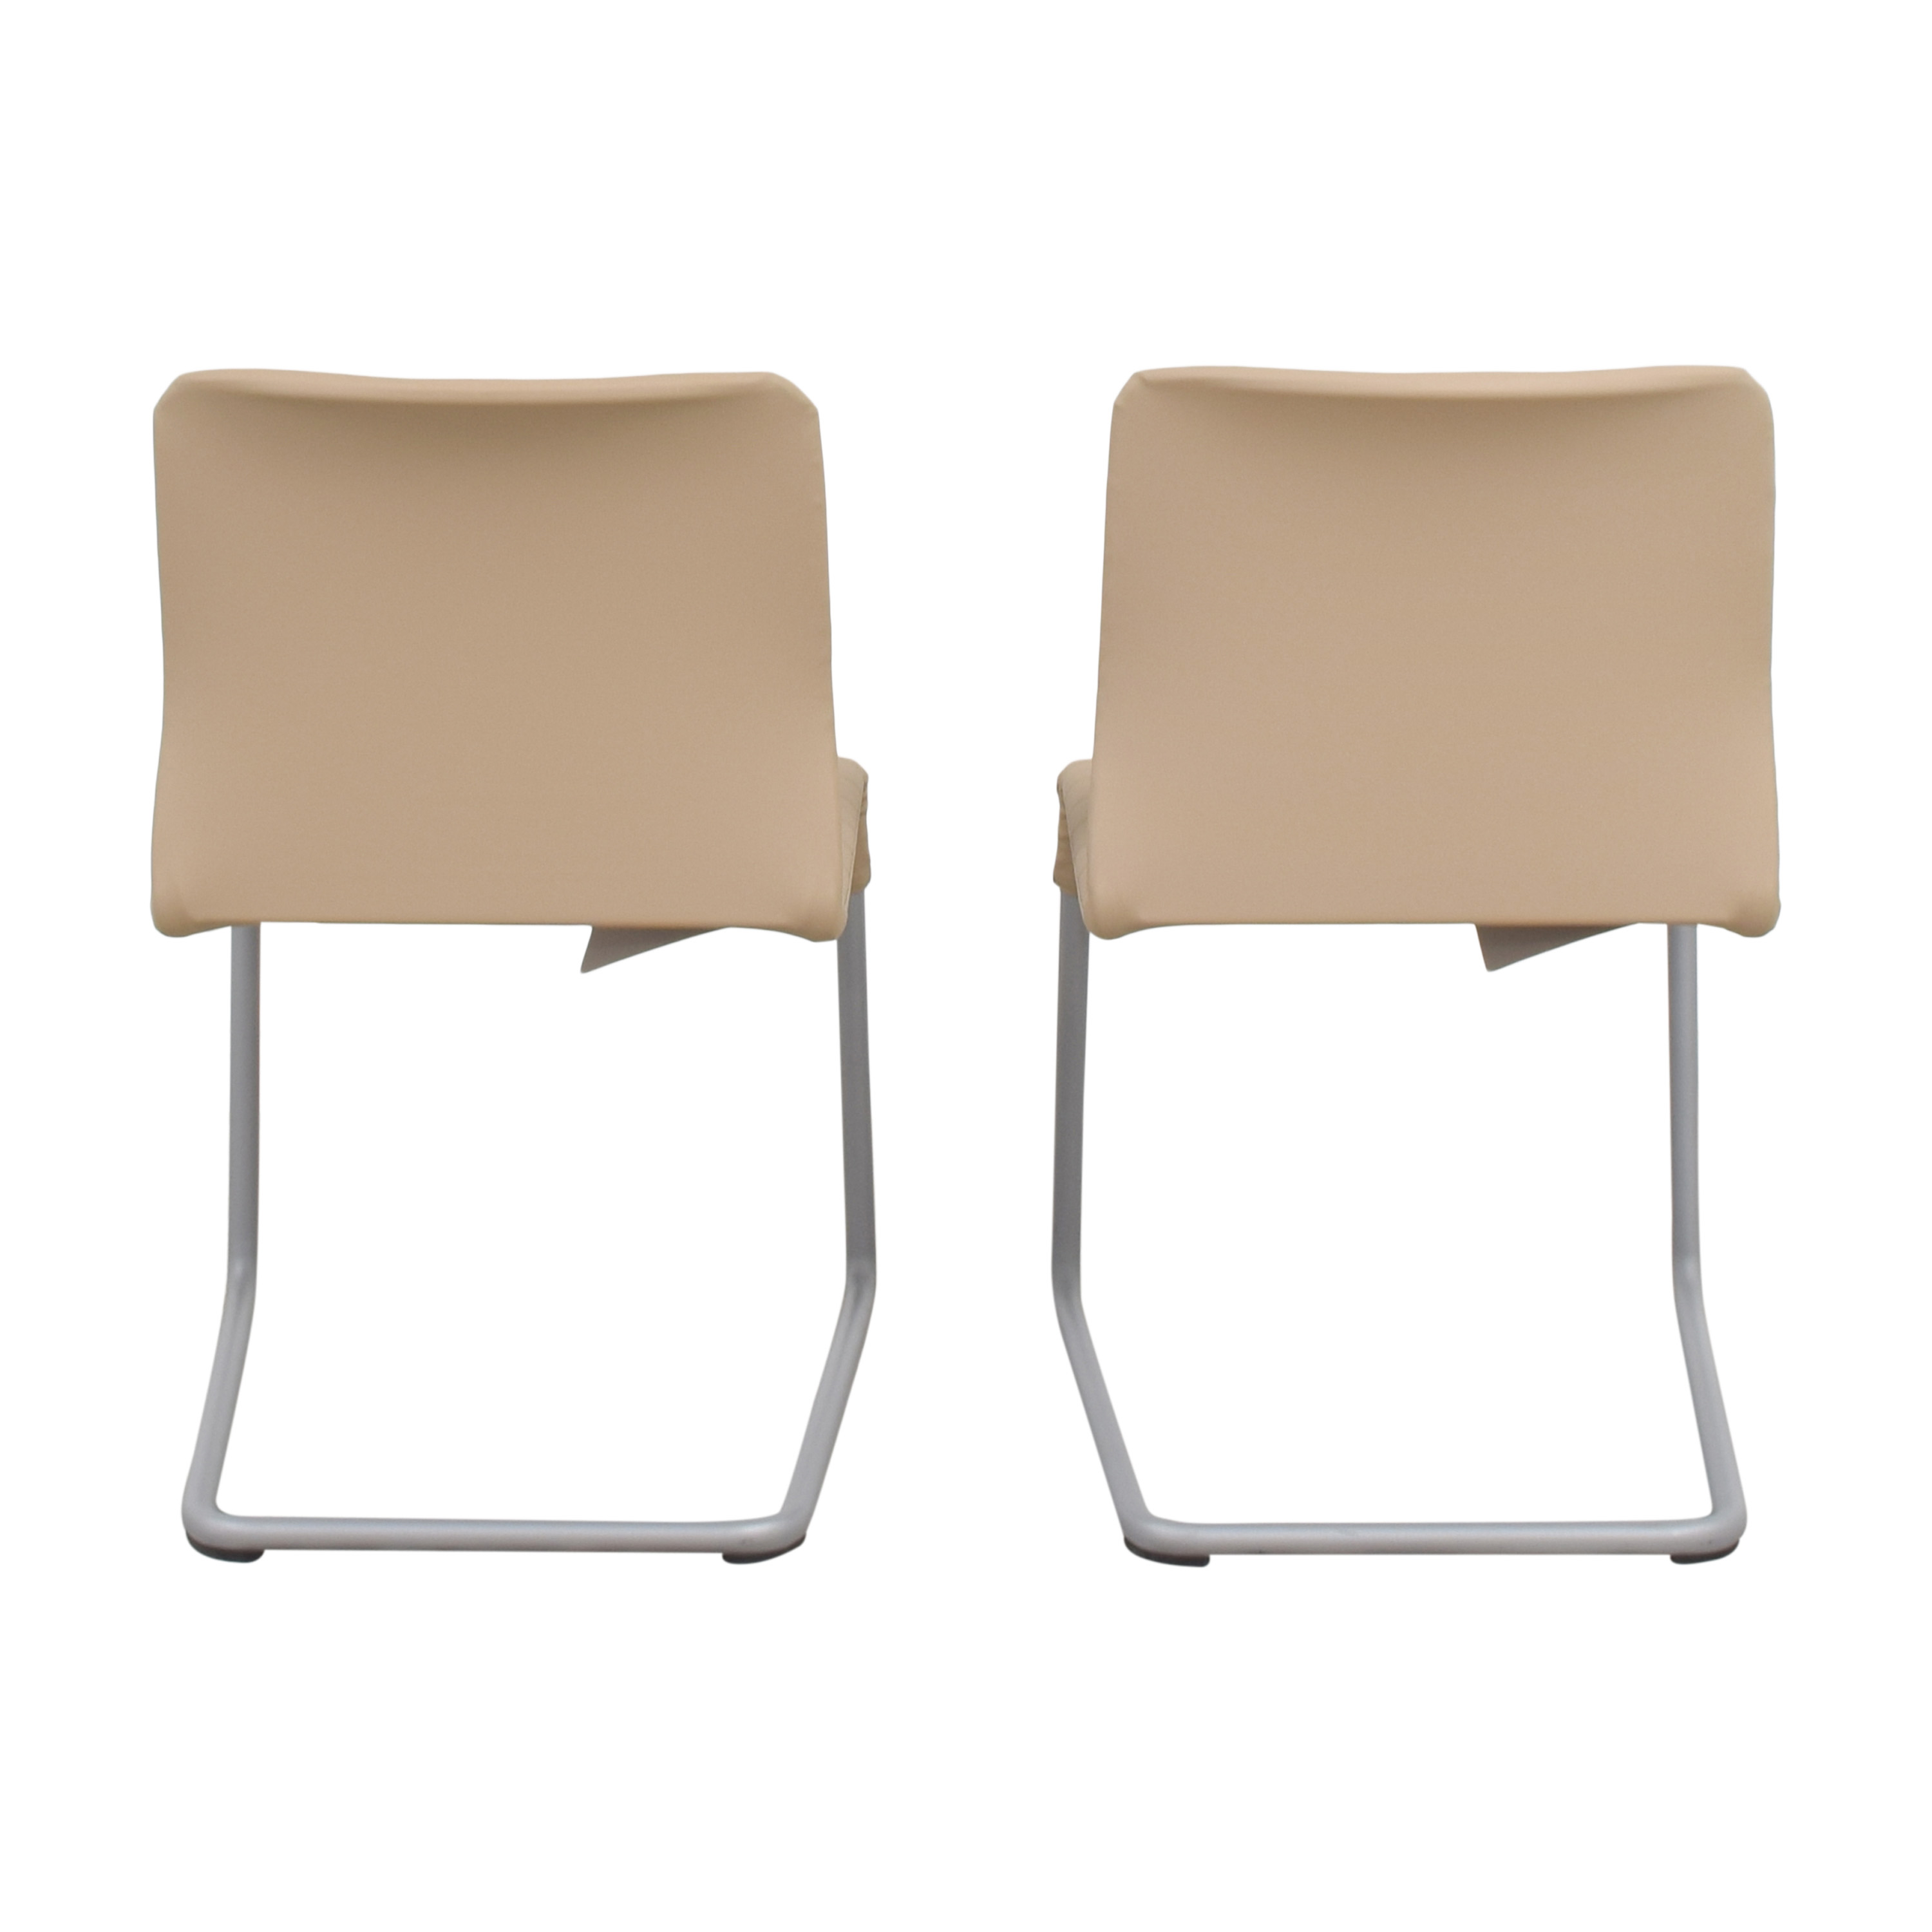 Global Furniture Group Global Furniture Group Lite Cantilever Frame Side Chairs on sale